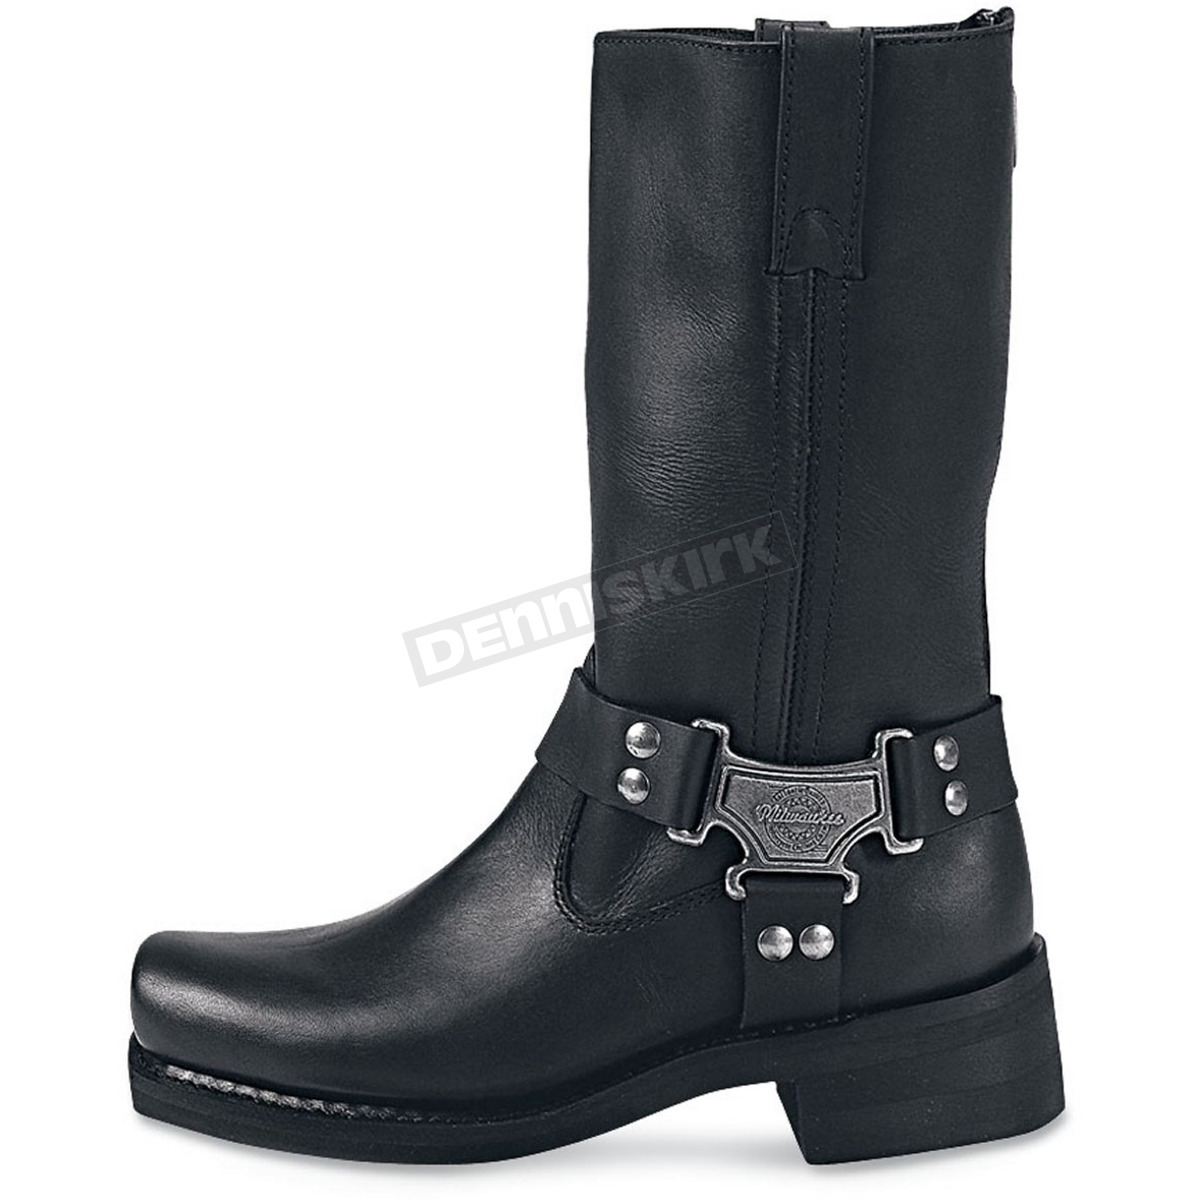 Black, Size 10.5EE Milwaukee Motorcycle Clothing Company Mens Outlaw Motorcycle Boots